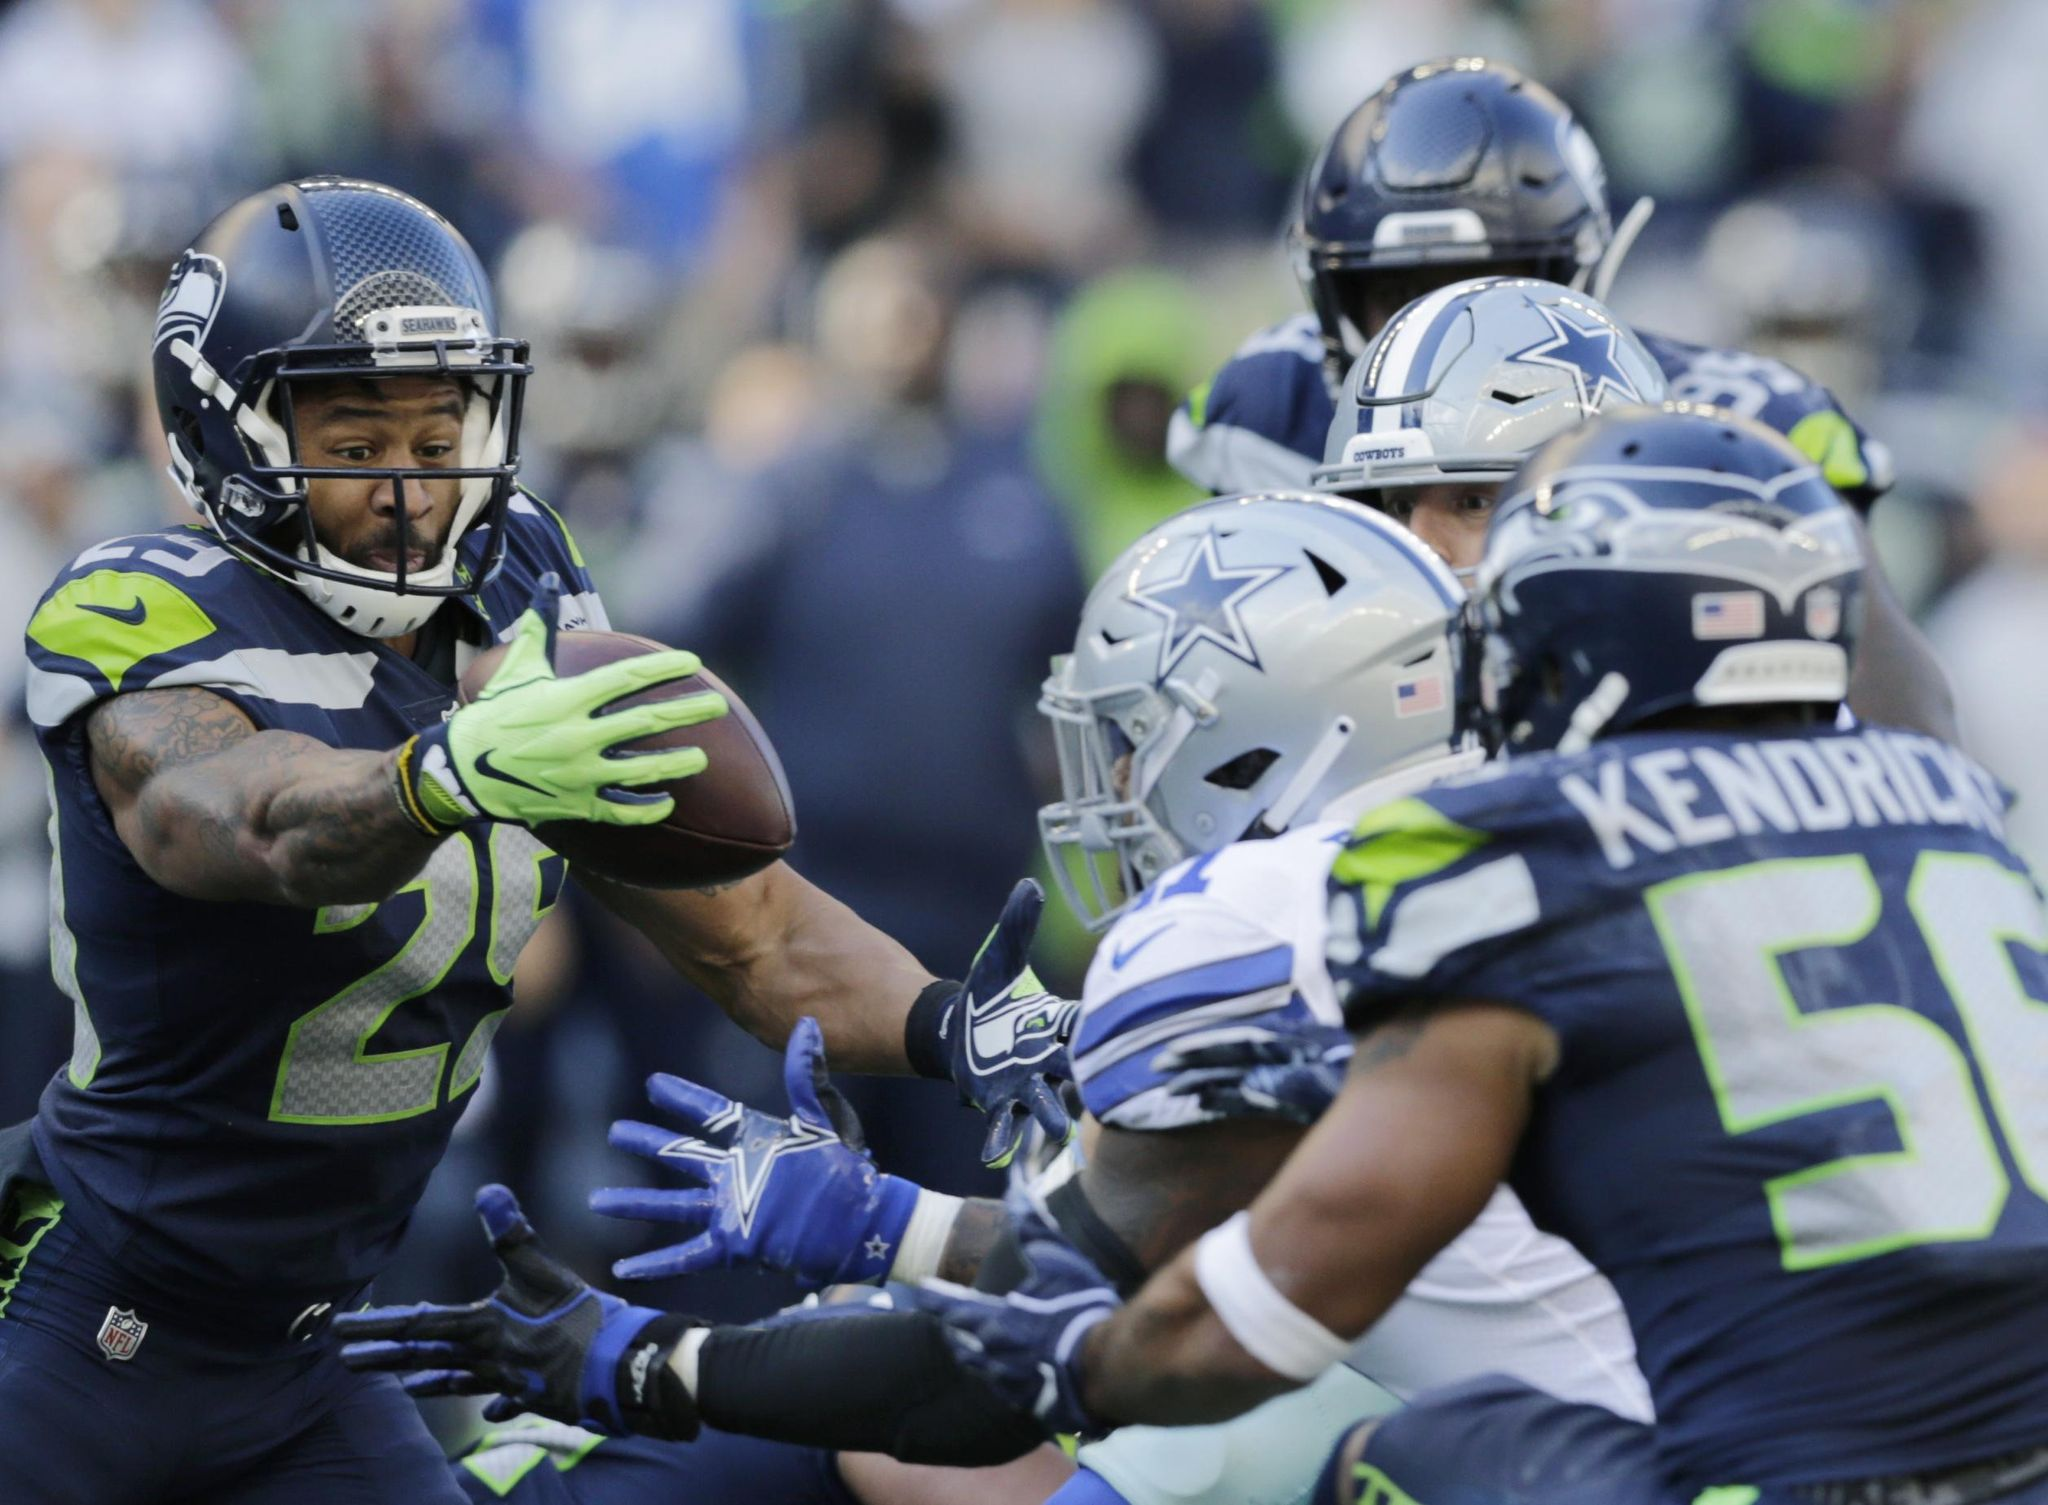 Cowboys' offense can't do enough in 24-13 loss to Seahawks - Washington Times